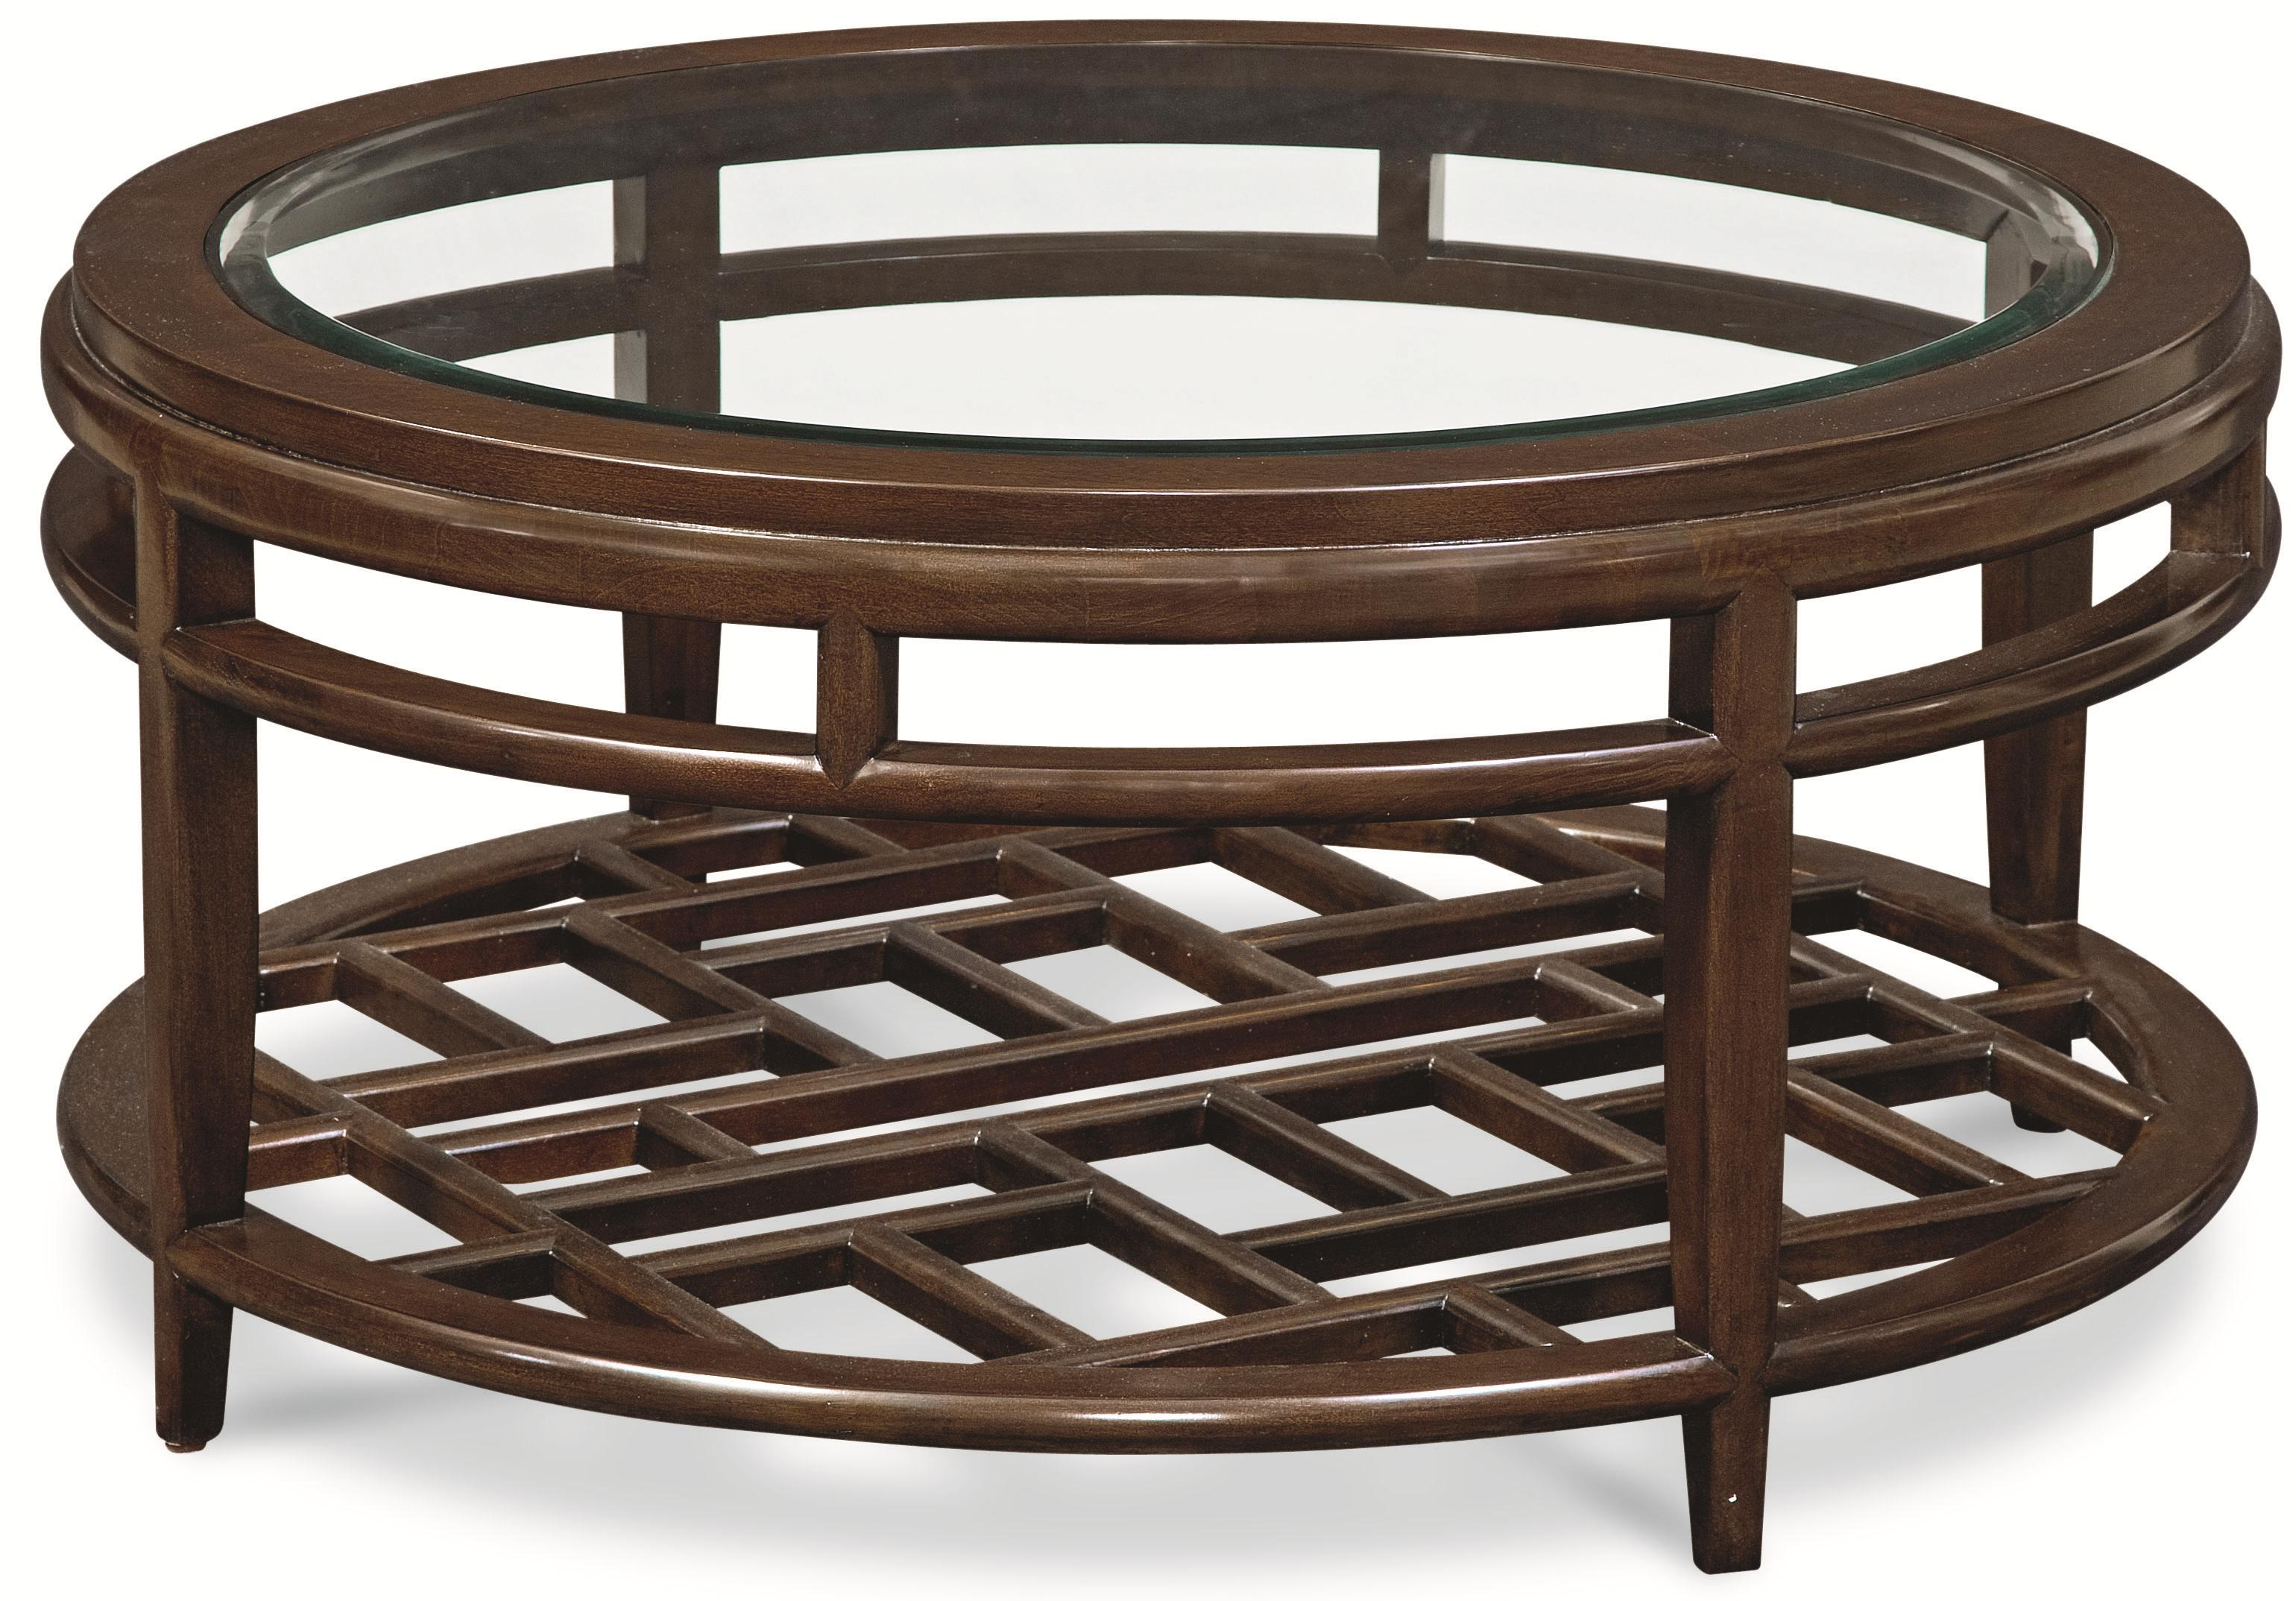 Thomasville Lantau Round Coffee Table w Wood Framed Glass Top